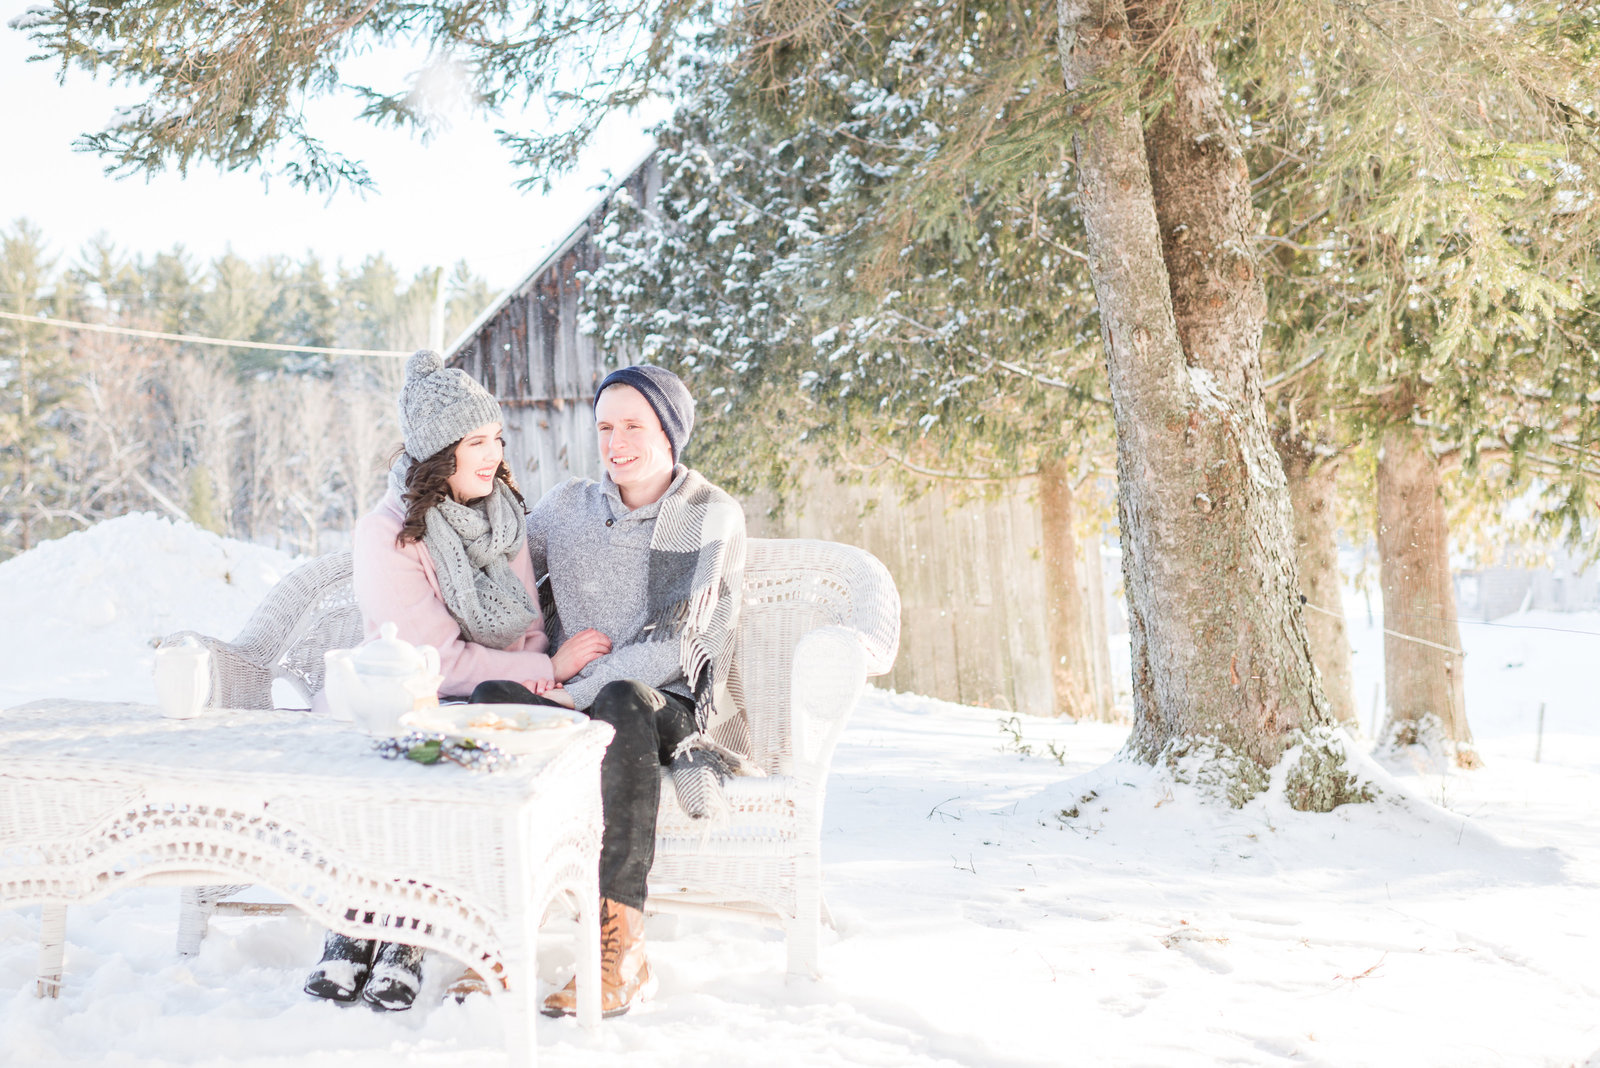 Cozy-Winter-Engagement-Photos-Photos-Val-des-monts-161355